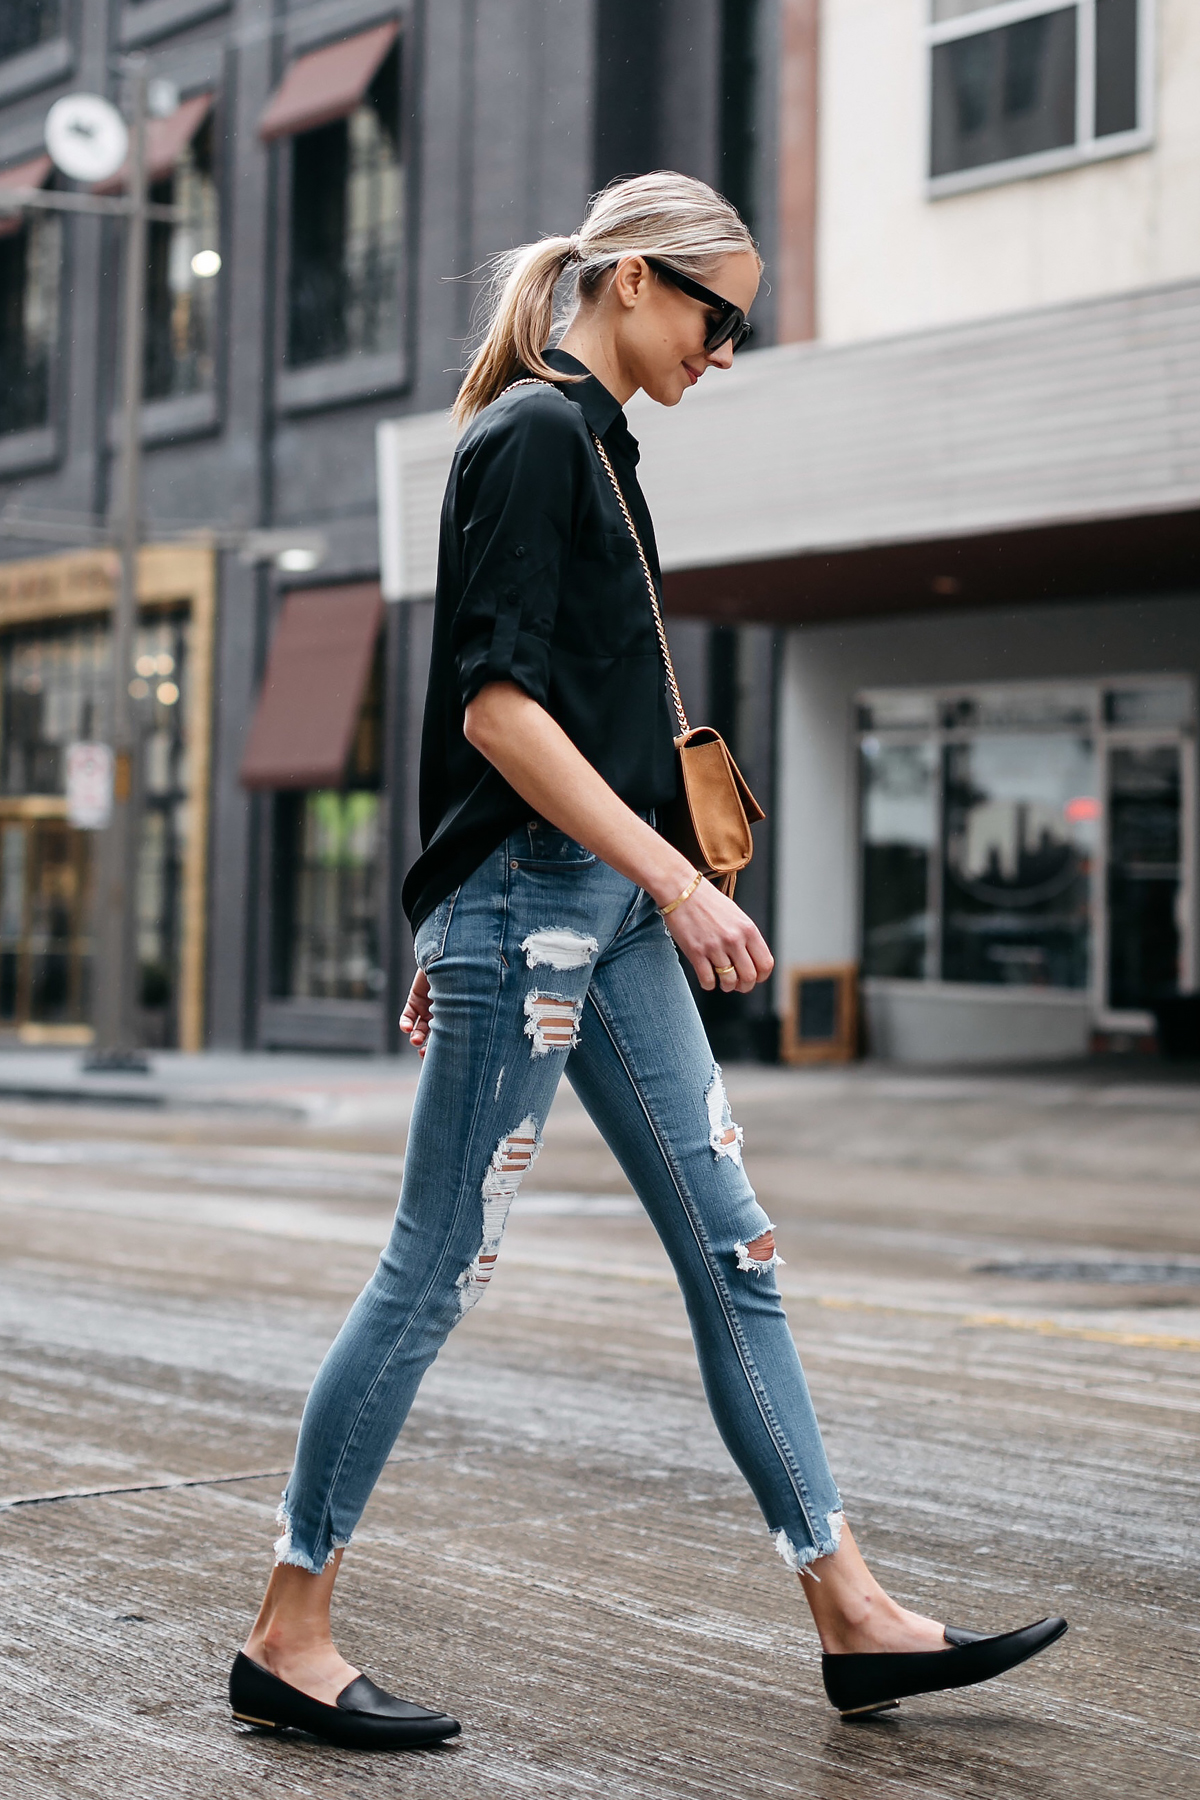 b13a2b8967 Blonde Woman Wearing Express Black Equipment Shirt Denim Ripped Skinny Jeans  Black Loafers Fashion Jackson Dallas